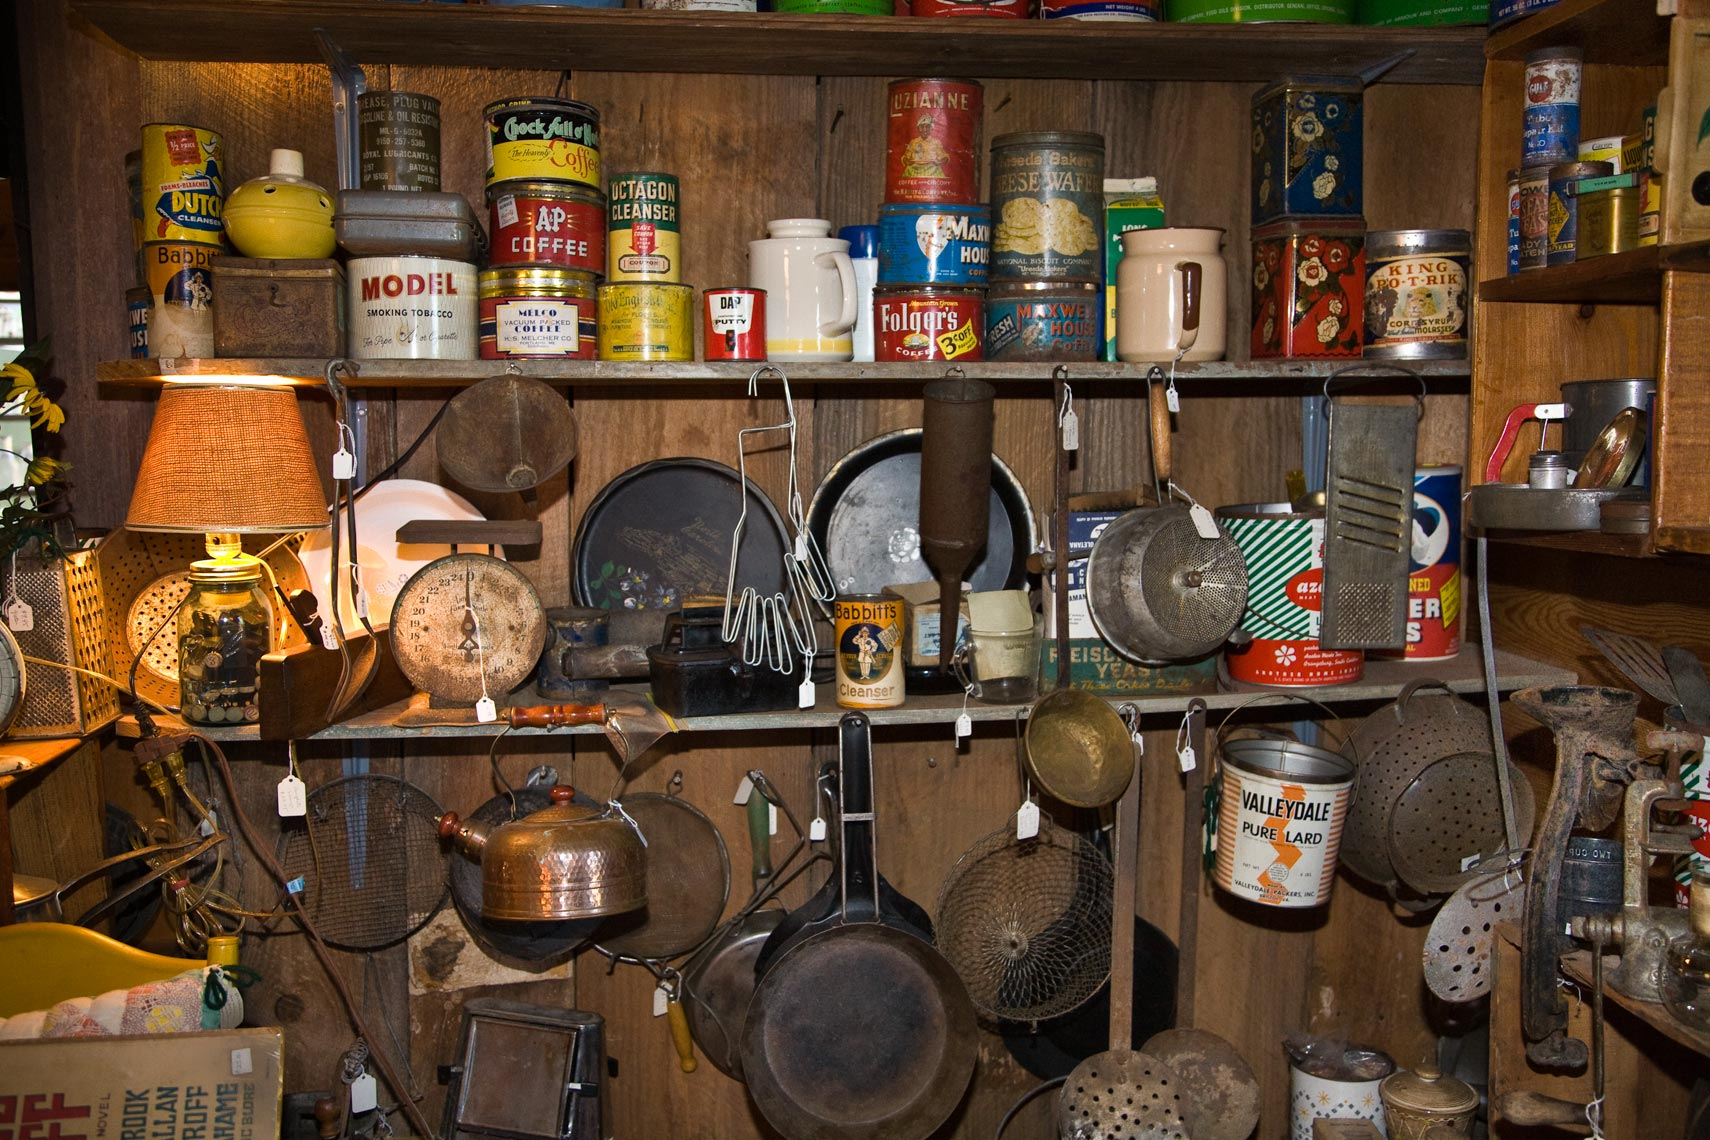 Vintage dry goods display